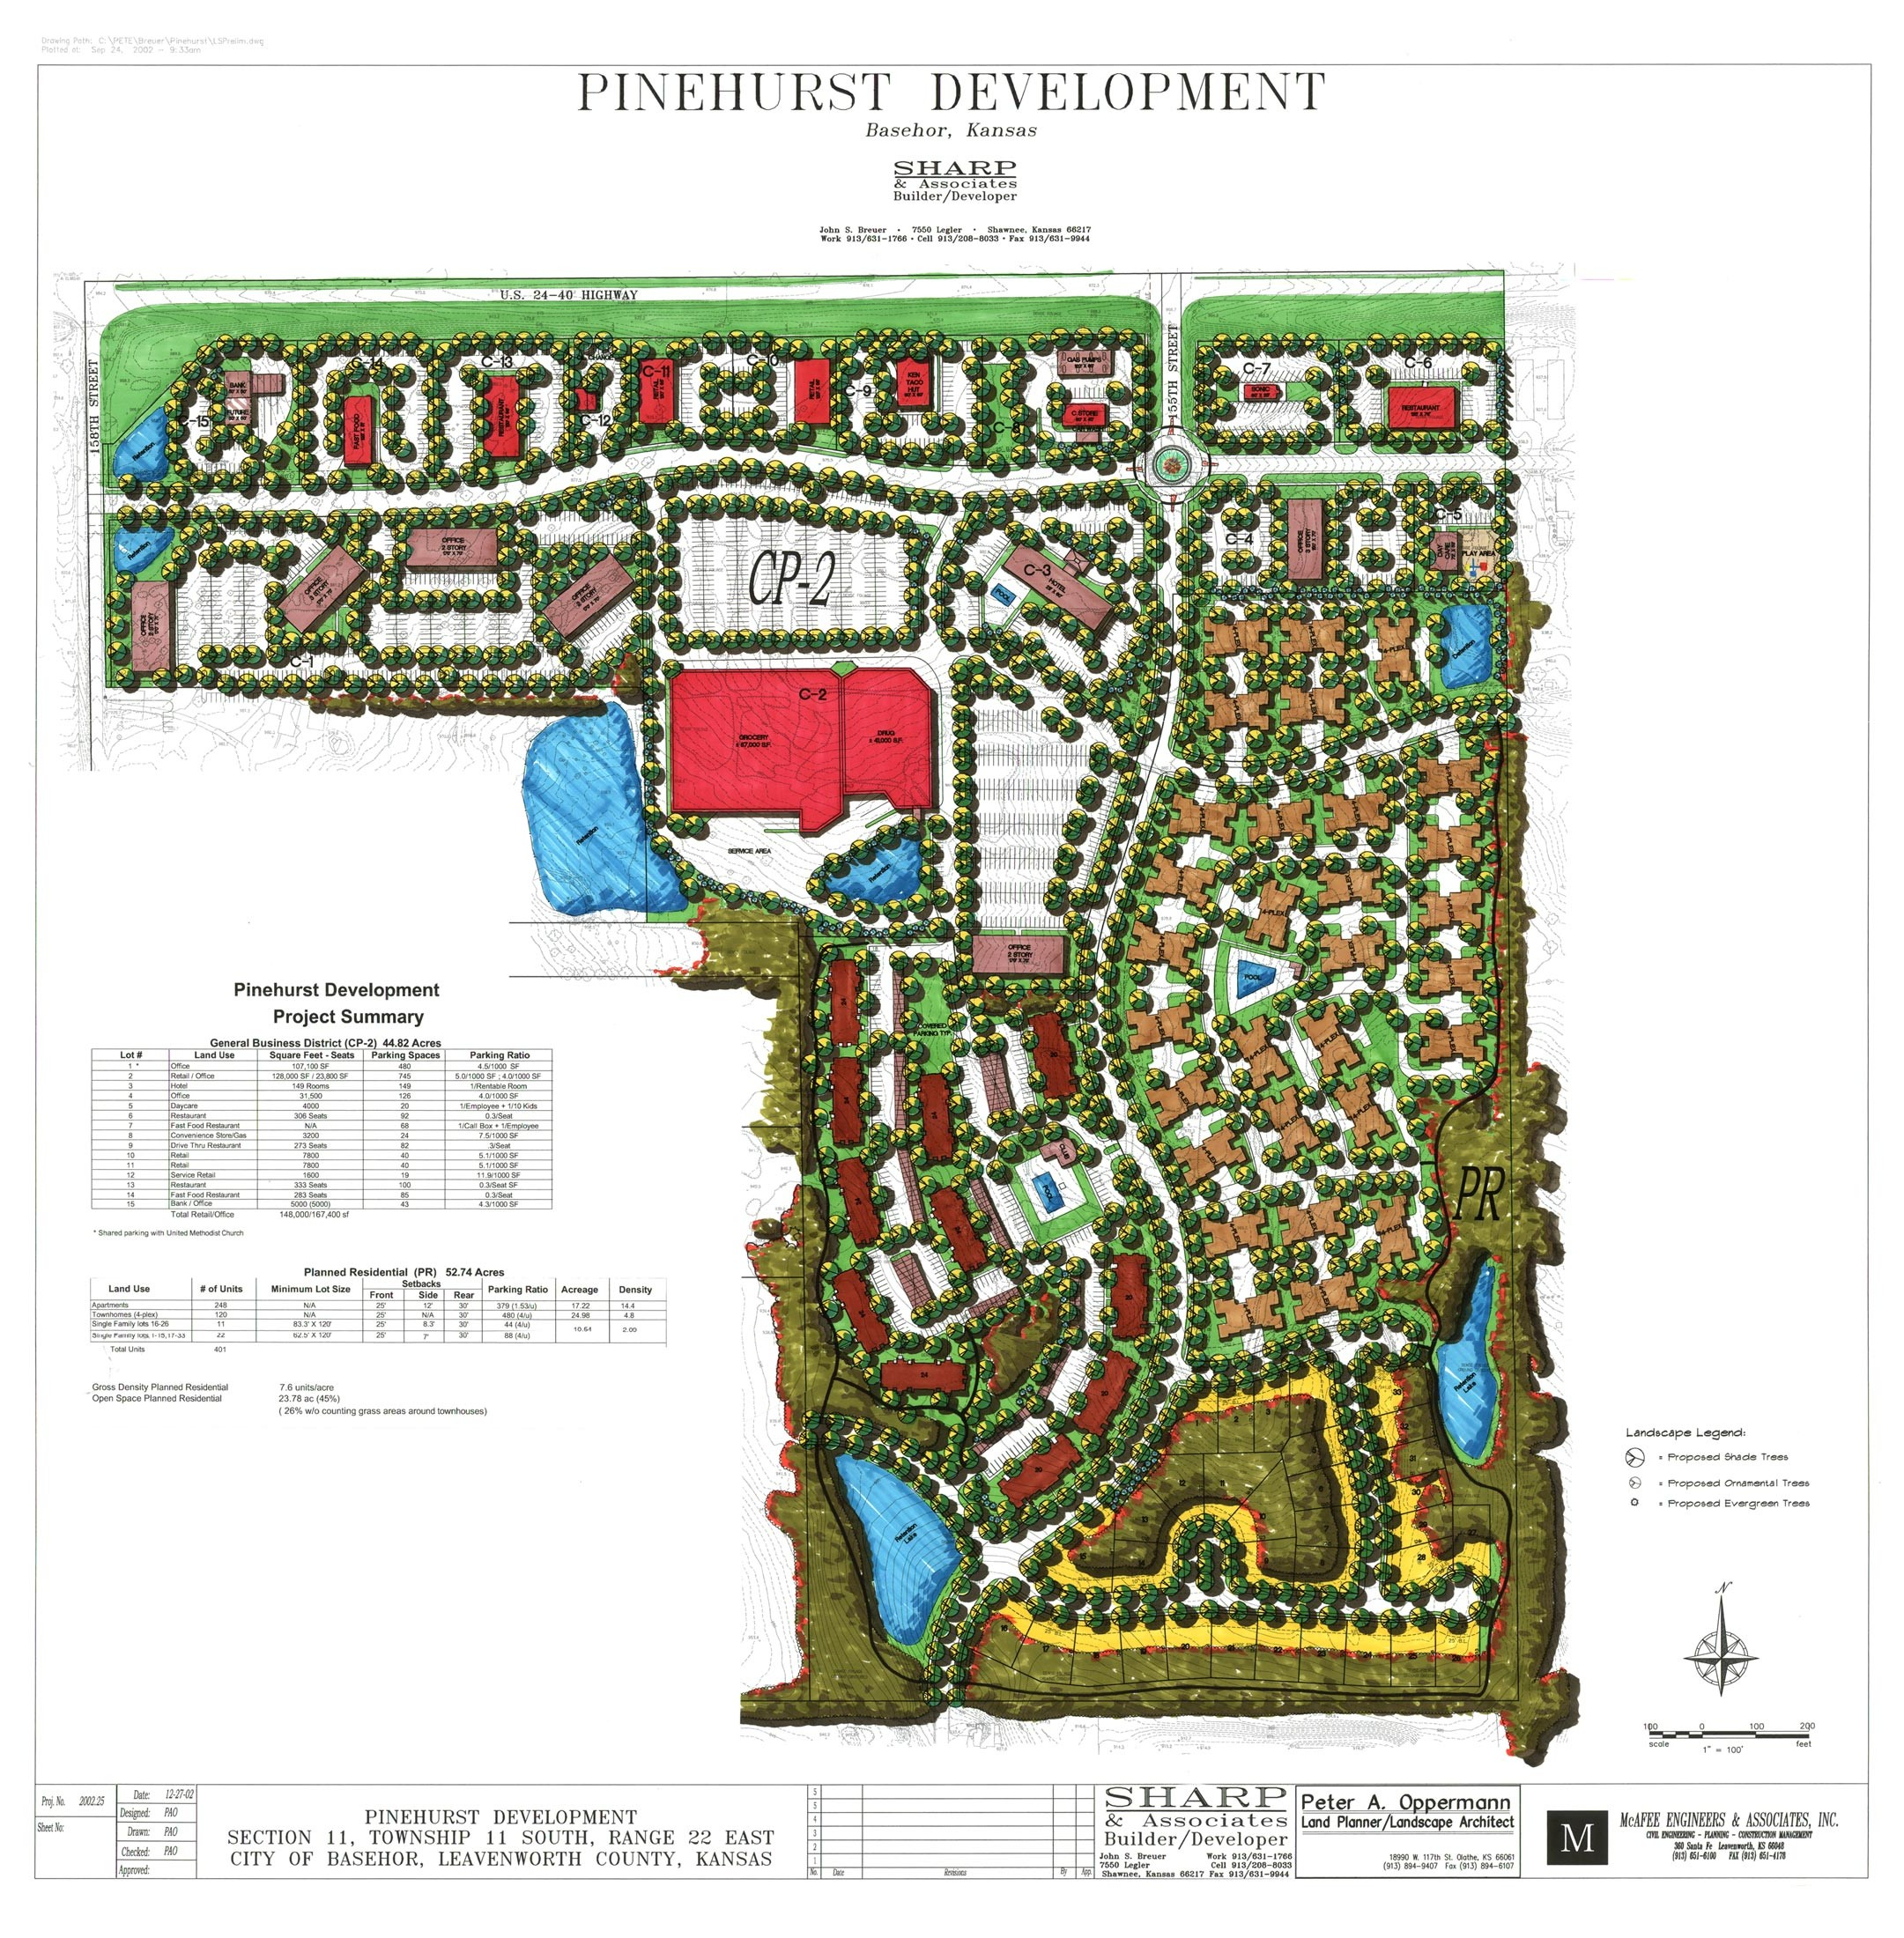 Pinehurst Development